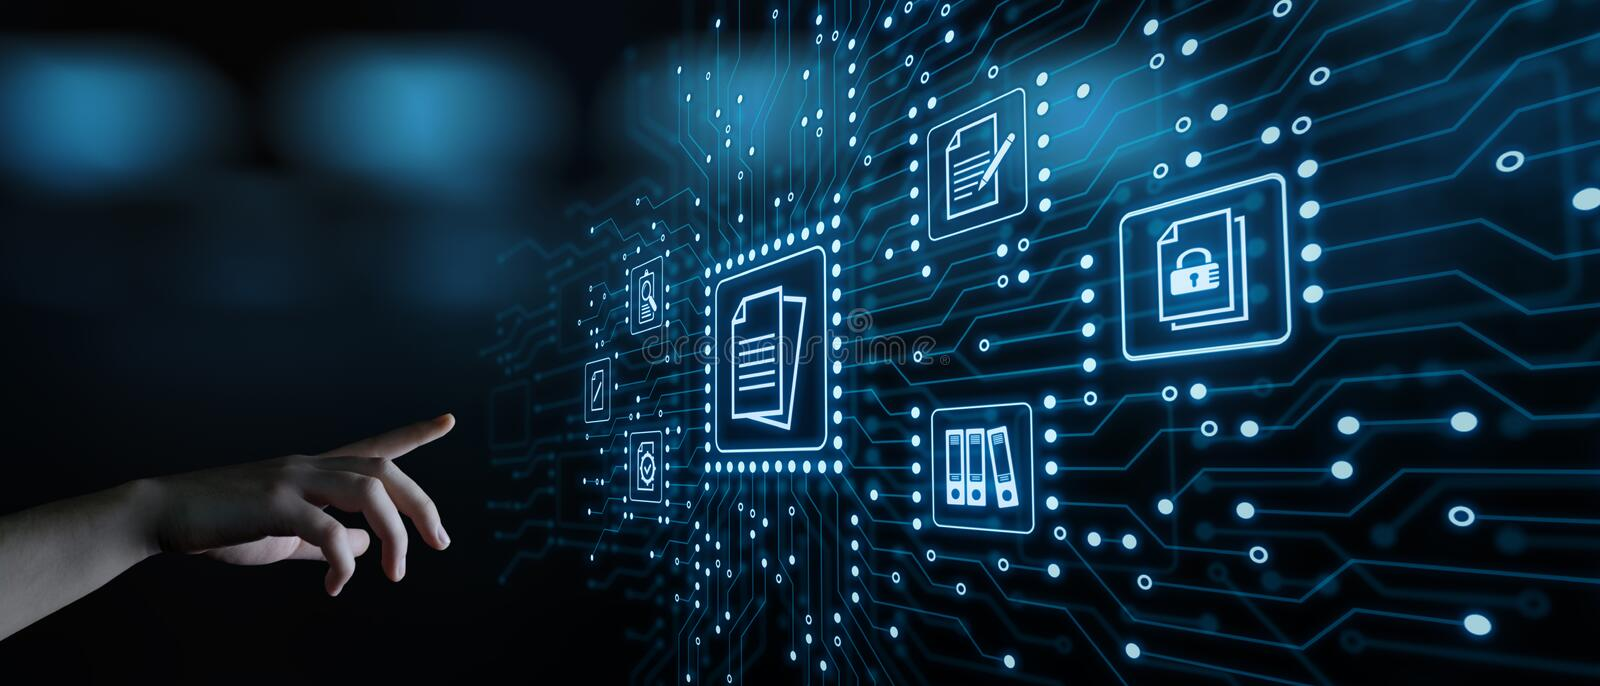 Document Management Data System Business Internet Technology Concept stock image